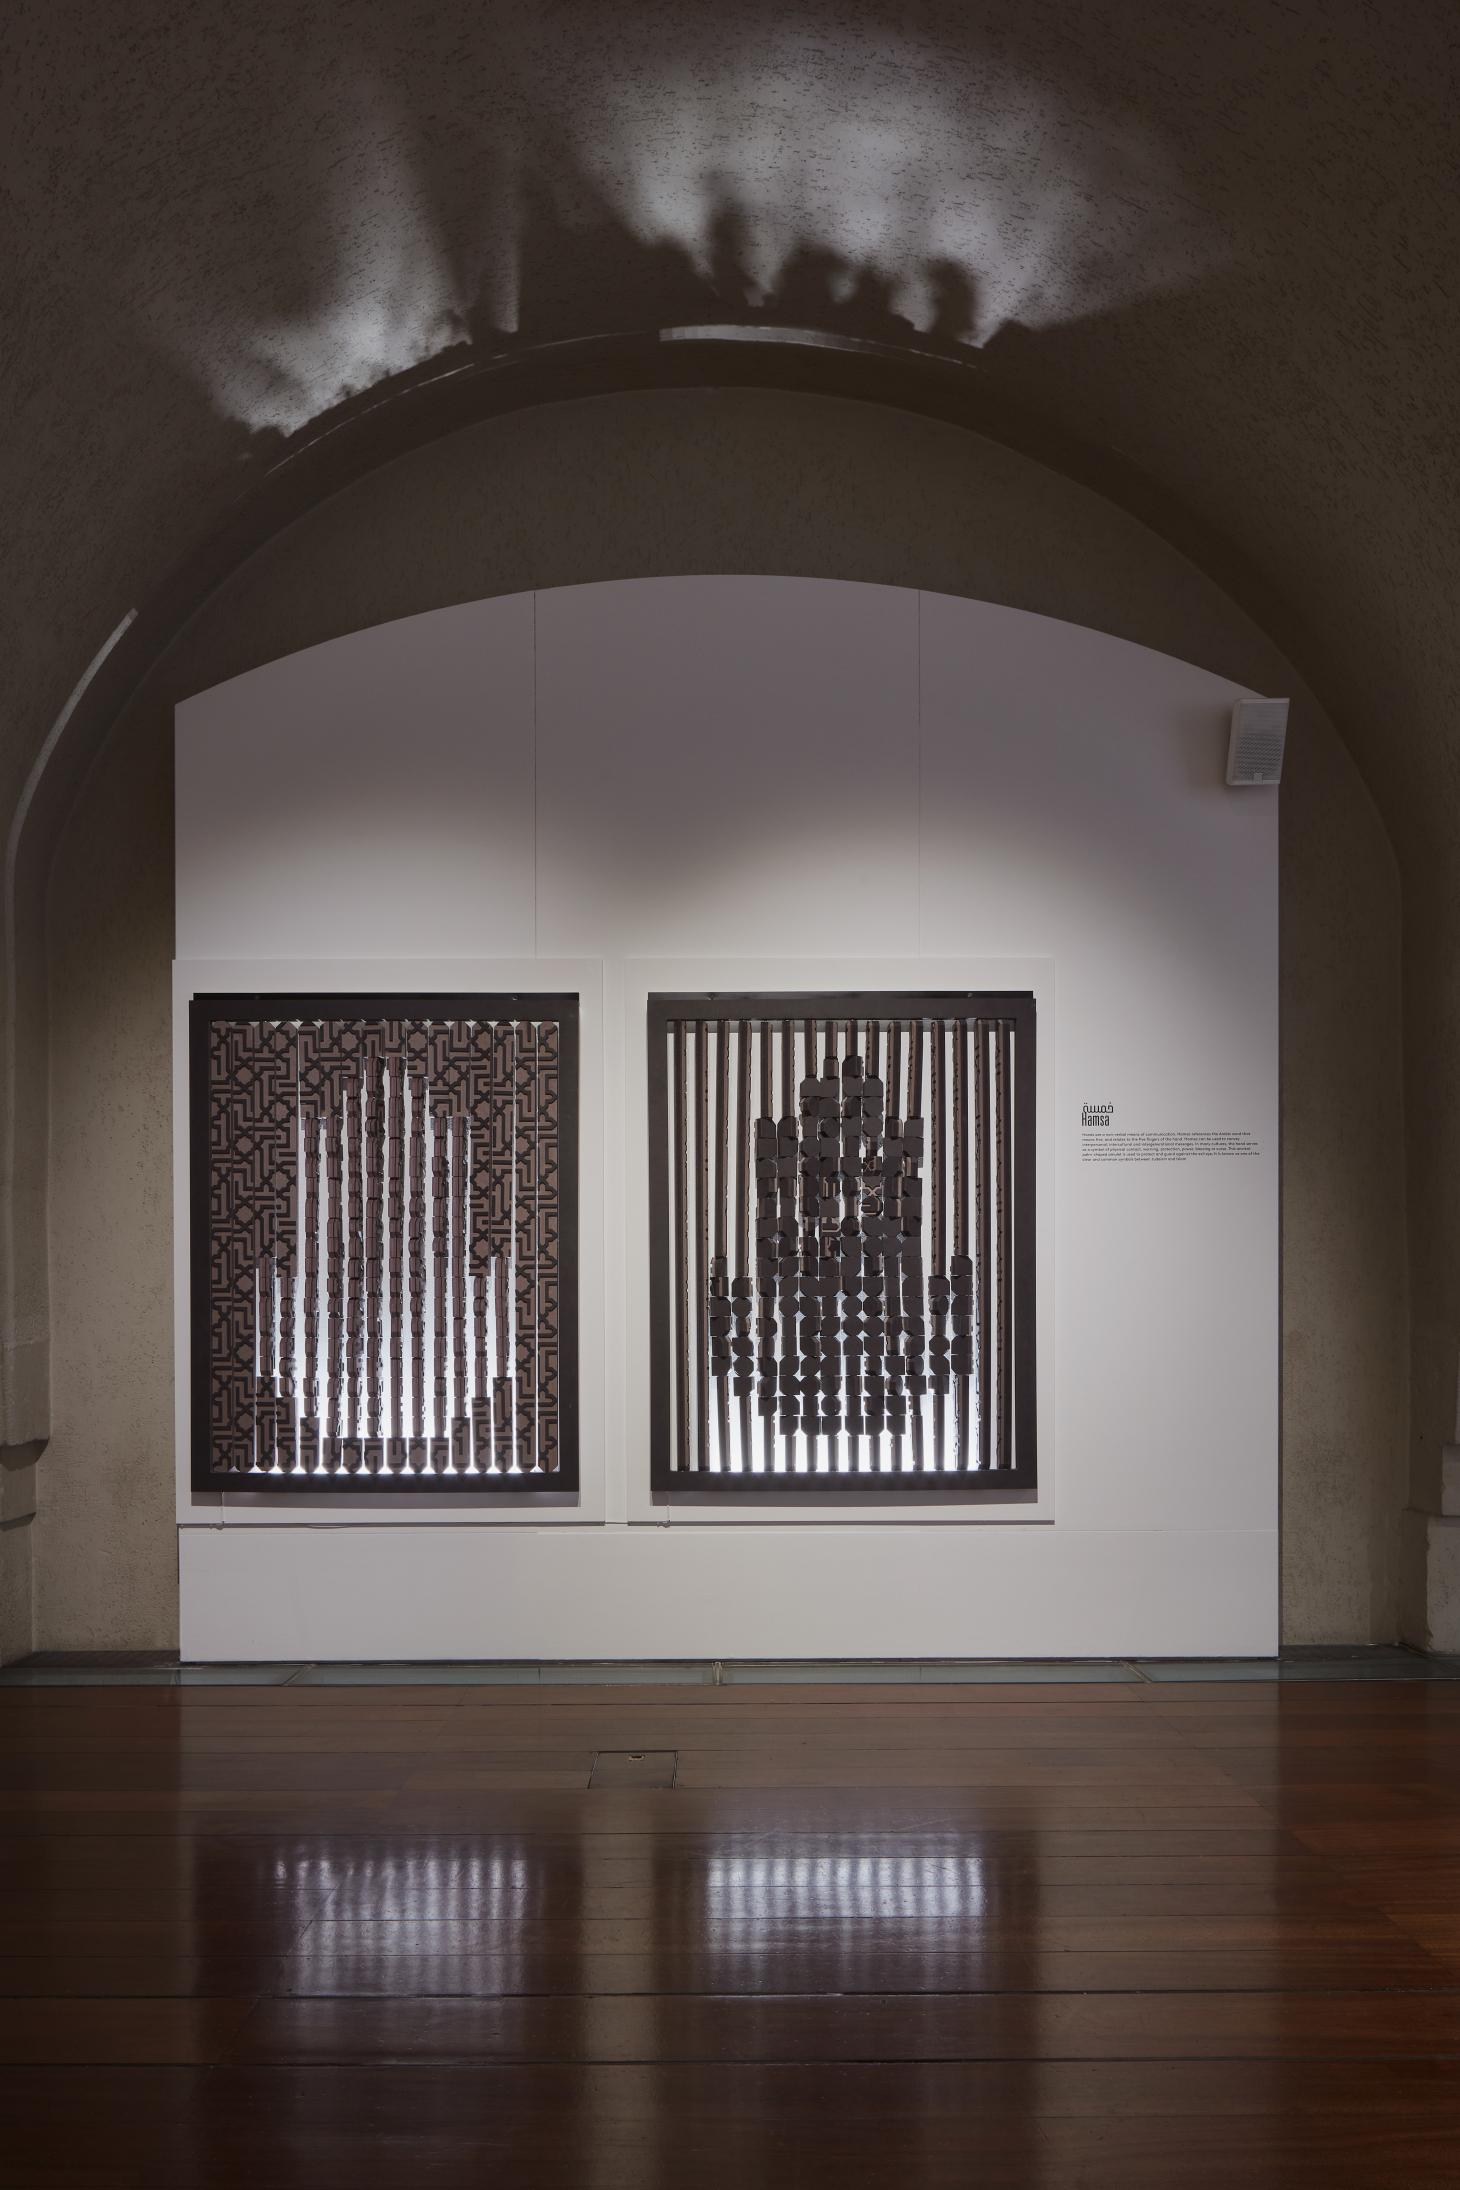 Wall hanging installation made of wood from Finsa, part of Designers in the Middle exhibition at London Design Biennale